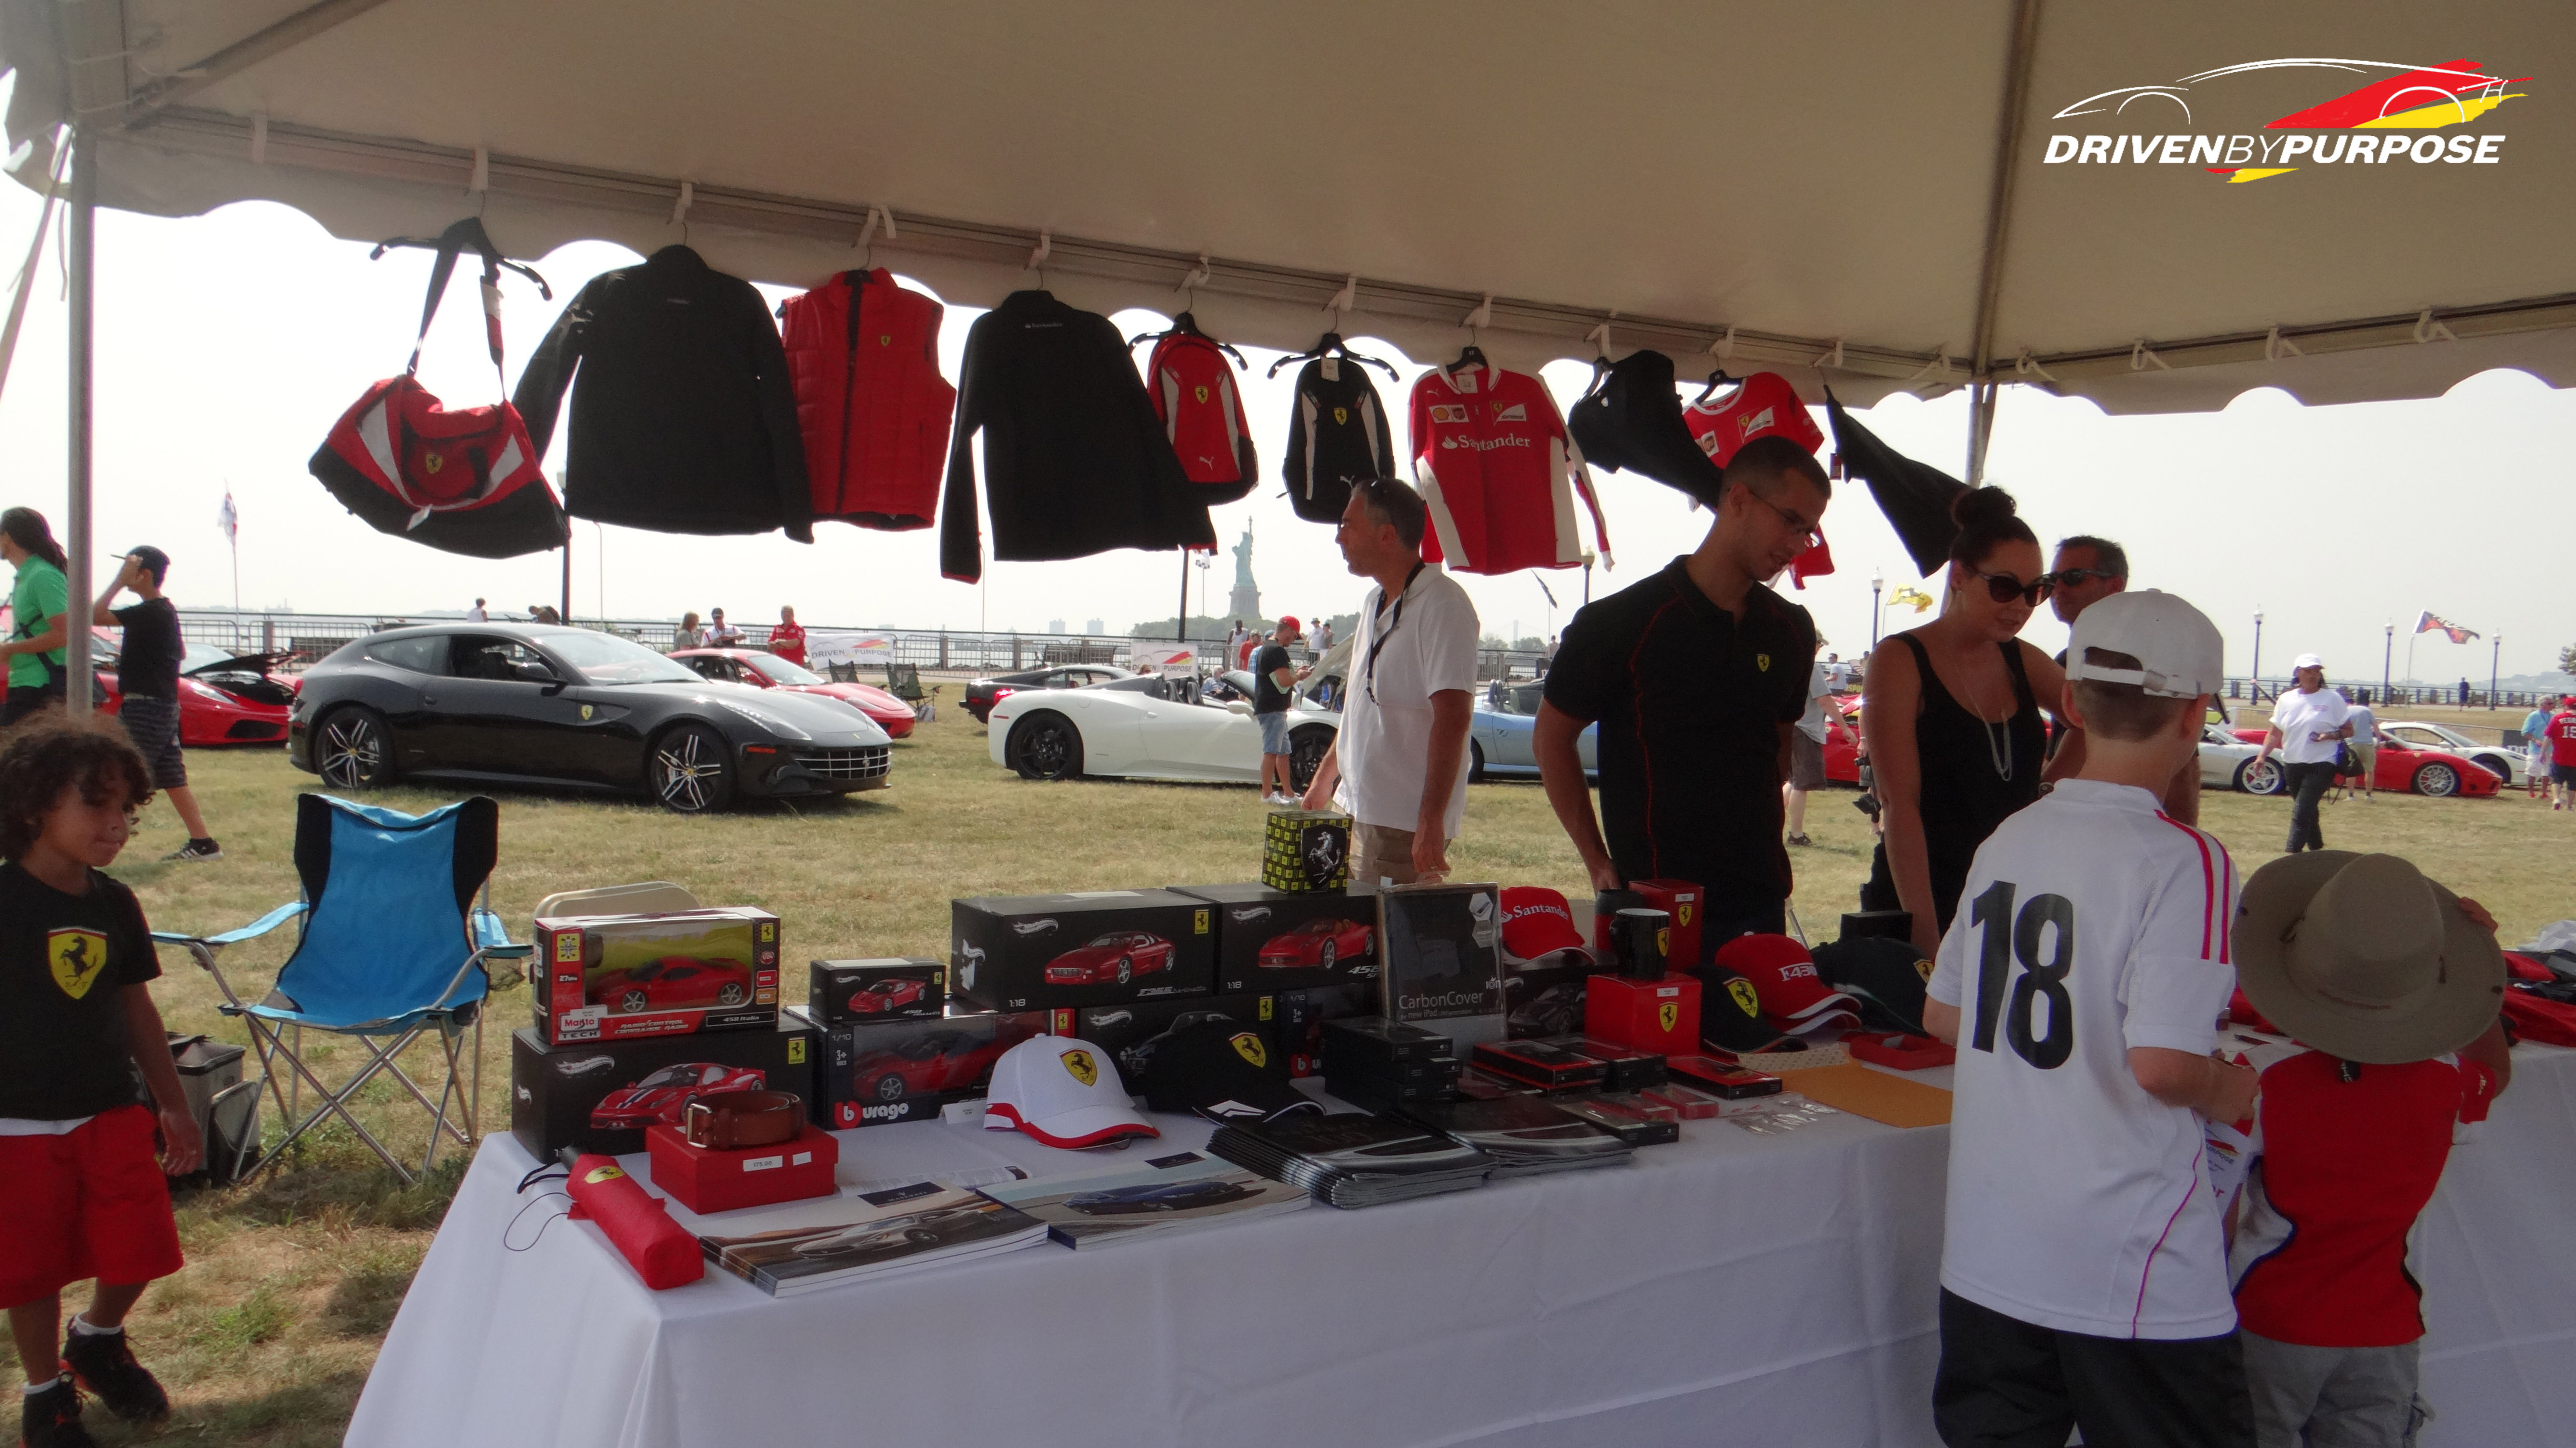 Driven by Purpose, Ferrari Merch